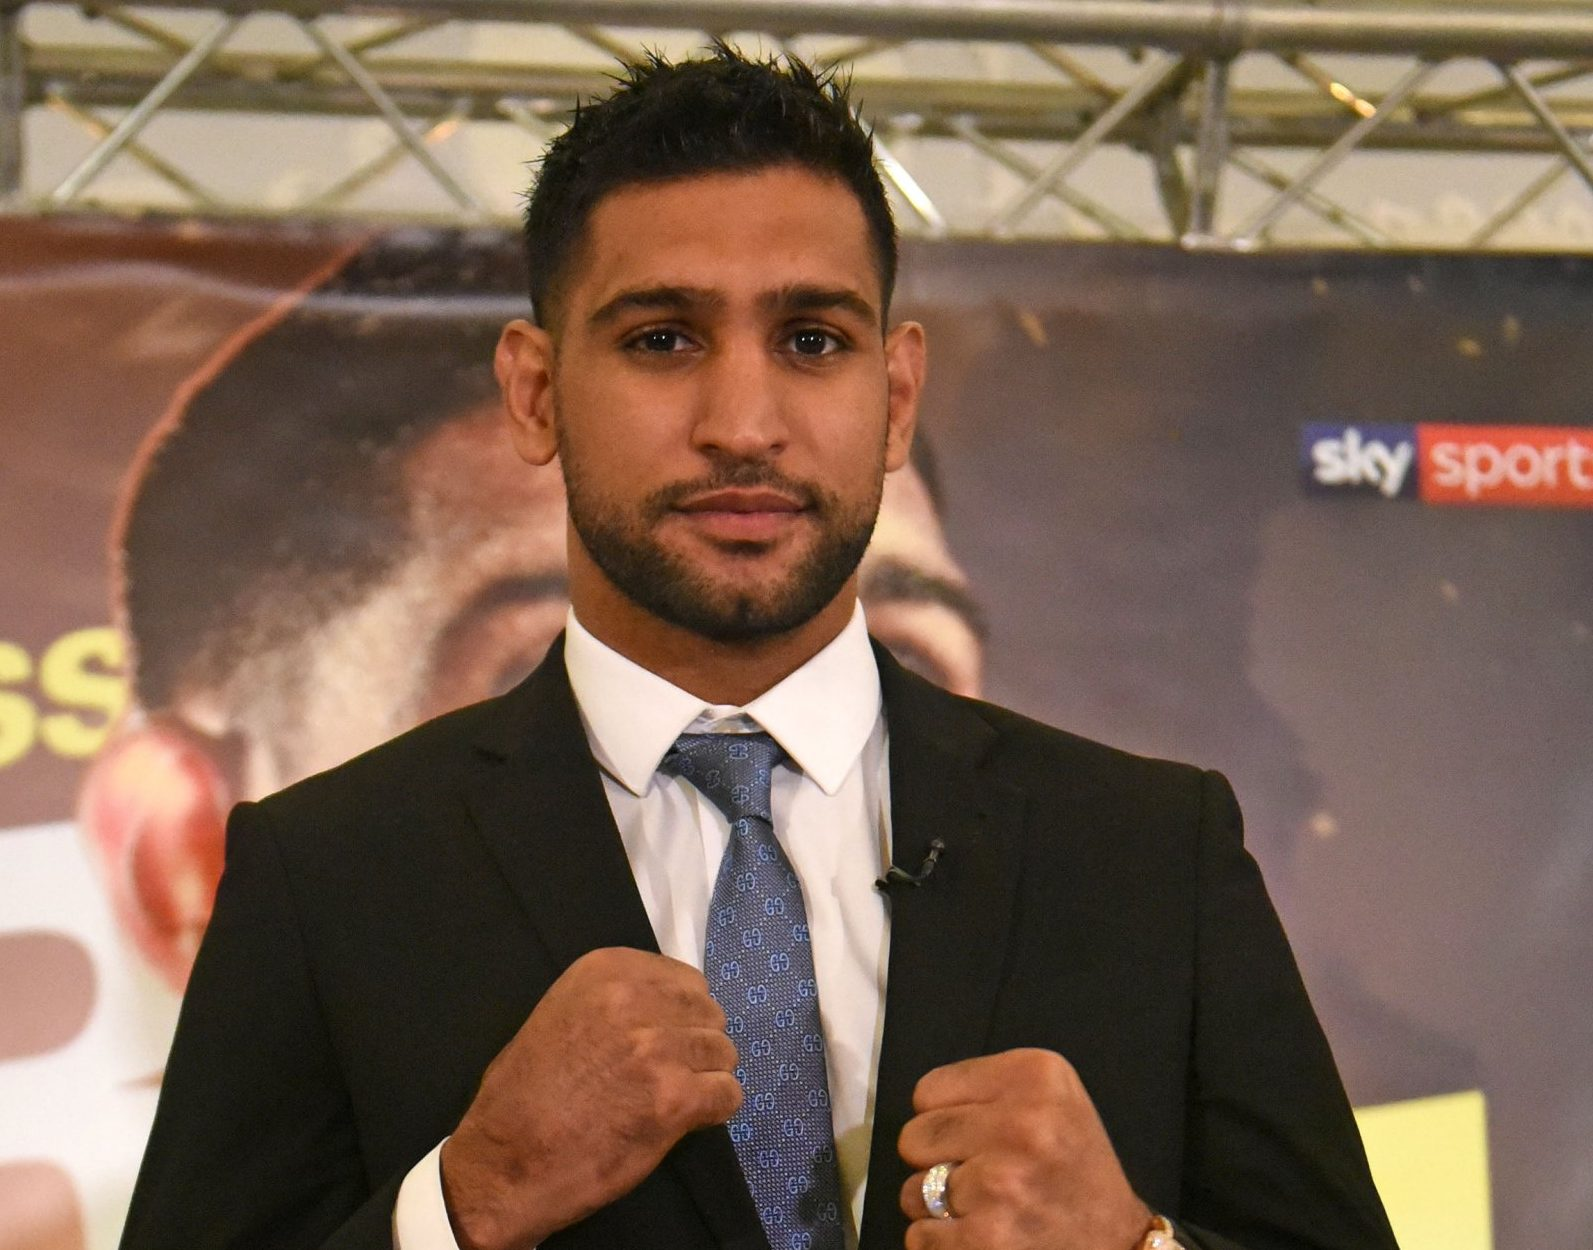 Amir Khan 'arranged secret tryst with woman' hours after live TV appearance where he spoke of repairing marriage